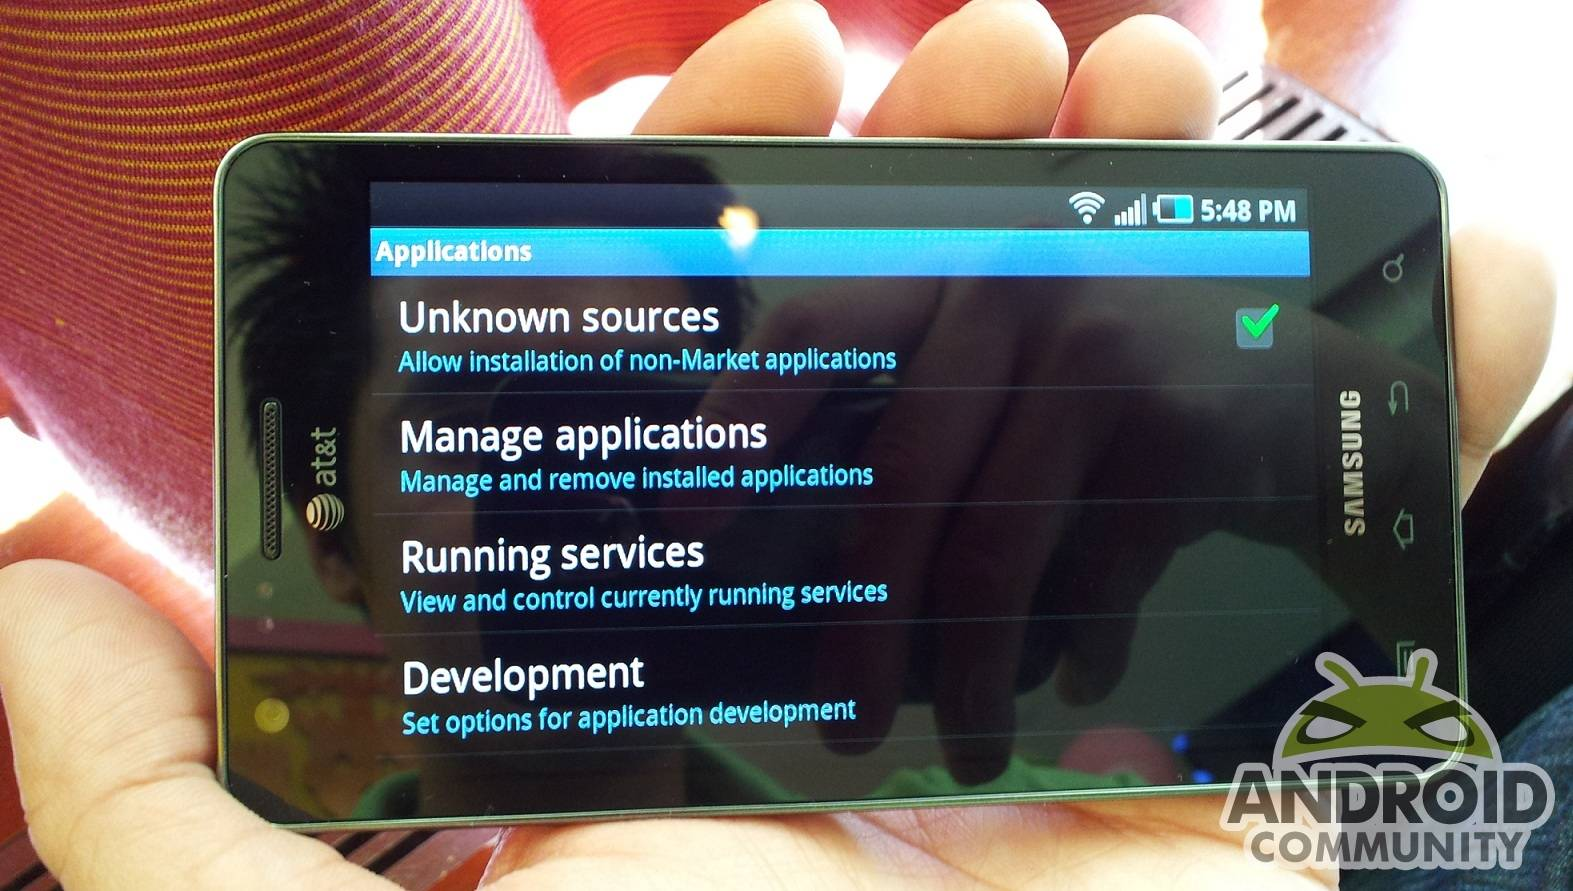 AT&T allows sideloading apps on the Infuse 4G - Android